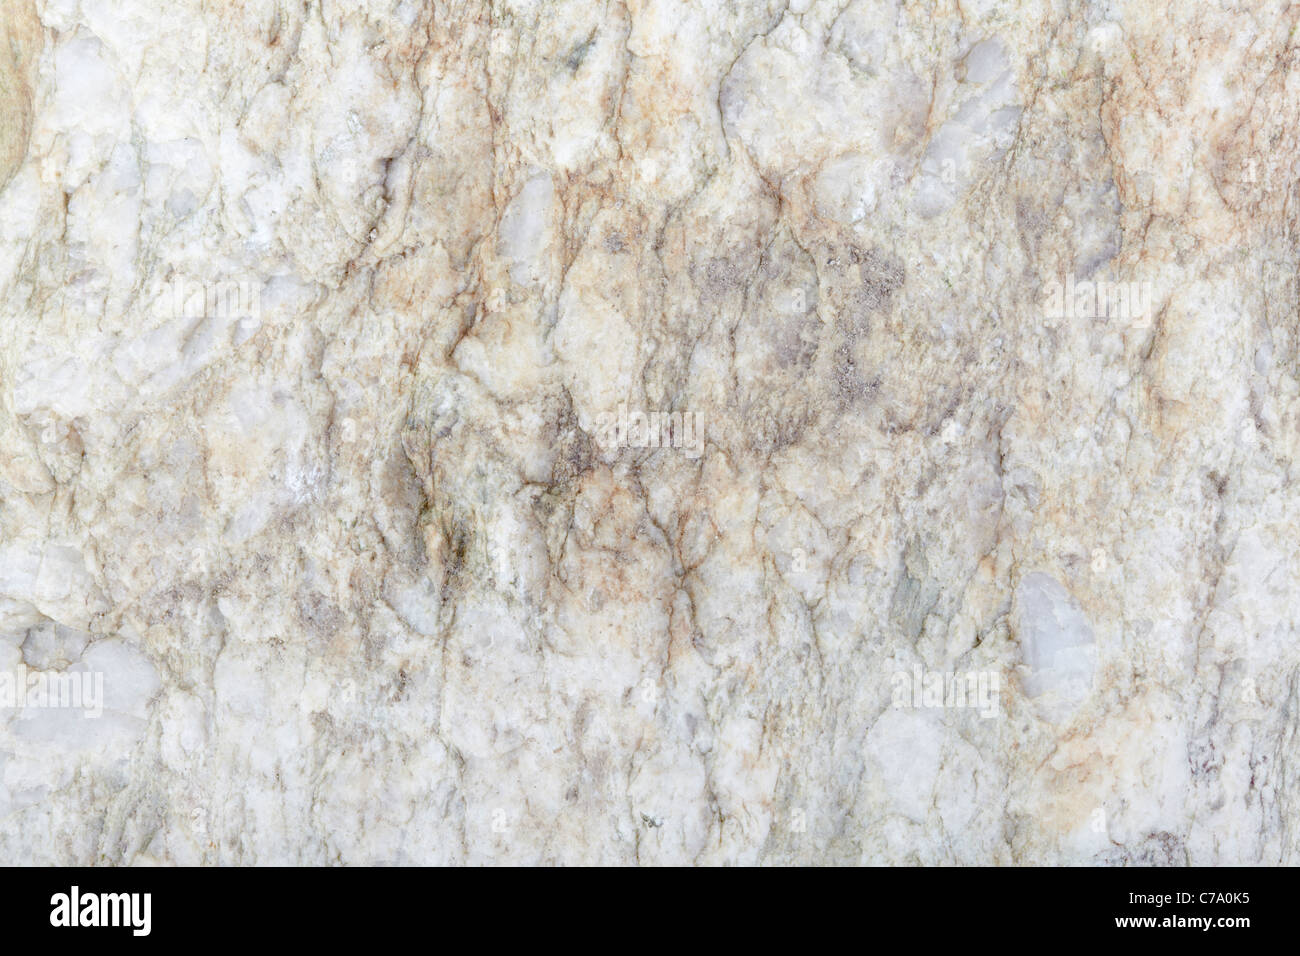 Cave stone texture background Stock Photo